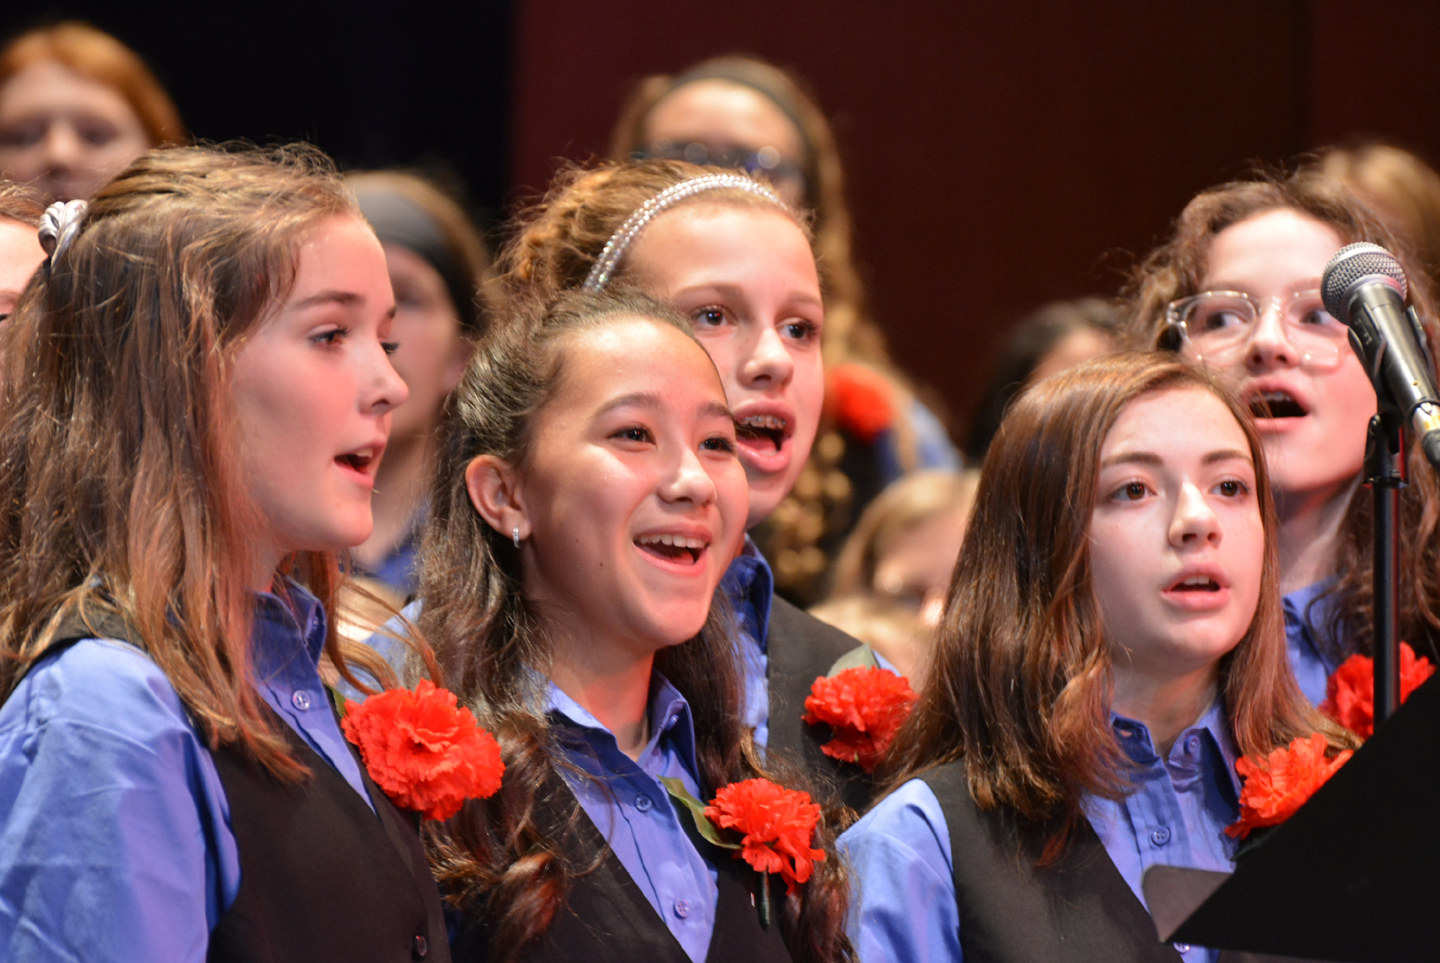 OMS choir students (from left) Savannah Feltrin, Serena Poynter, Layni Chaisson, Morgan McGuire and Sophia Ziegler sing as part of a Veterans Day tribute. For more photos, see Page 13. Photo by C.J. Carnacchio.